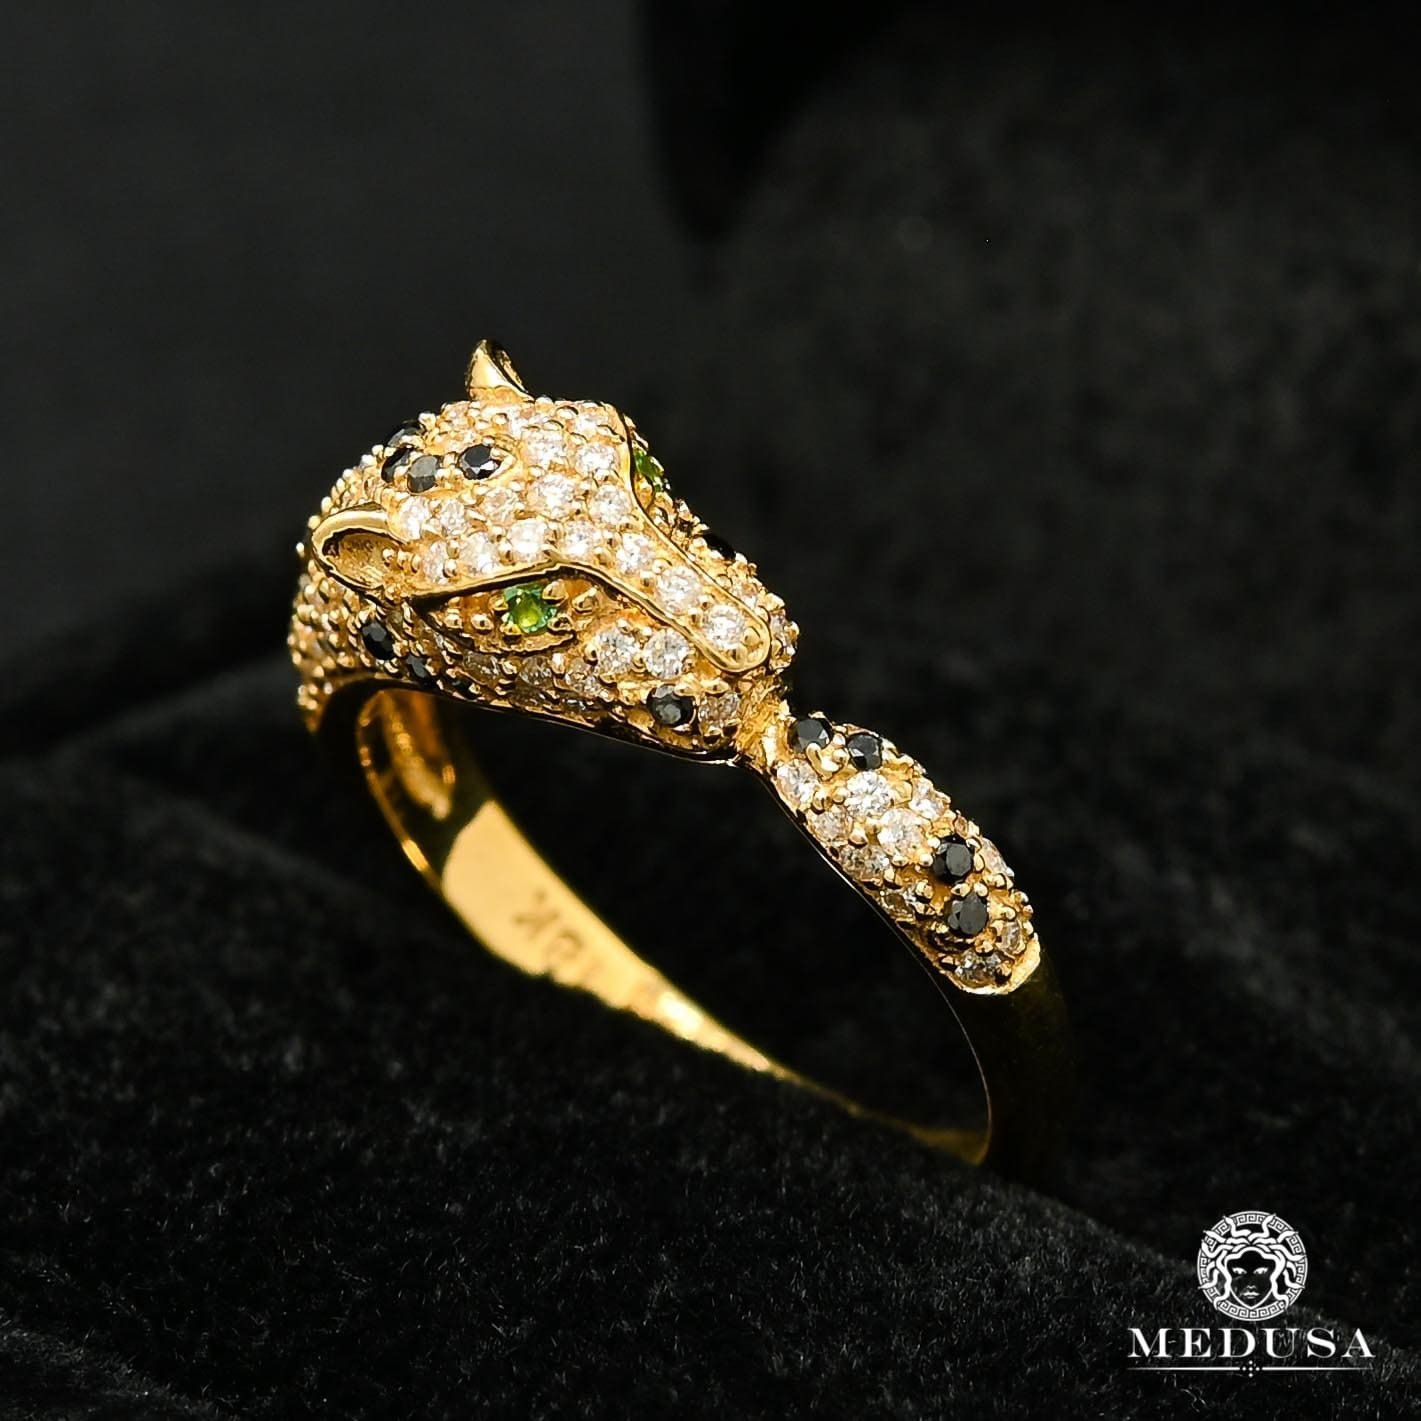 Bague à Diamants en Or 18K | Bague Femme Tiger D1 - Diamant Or Jaune